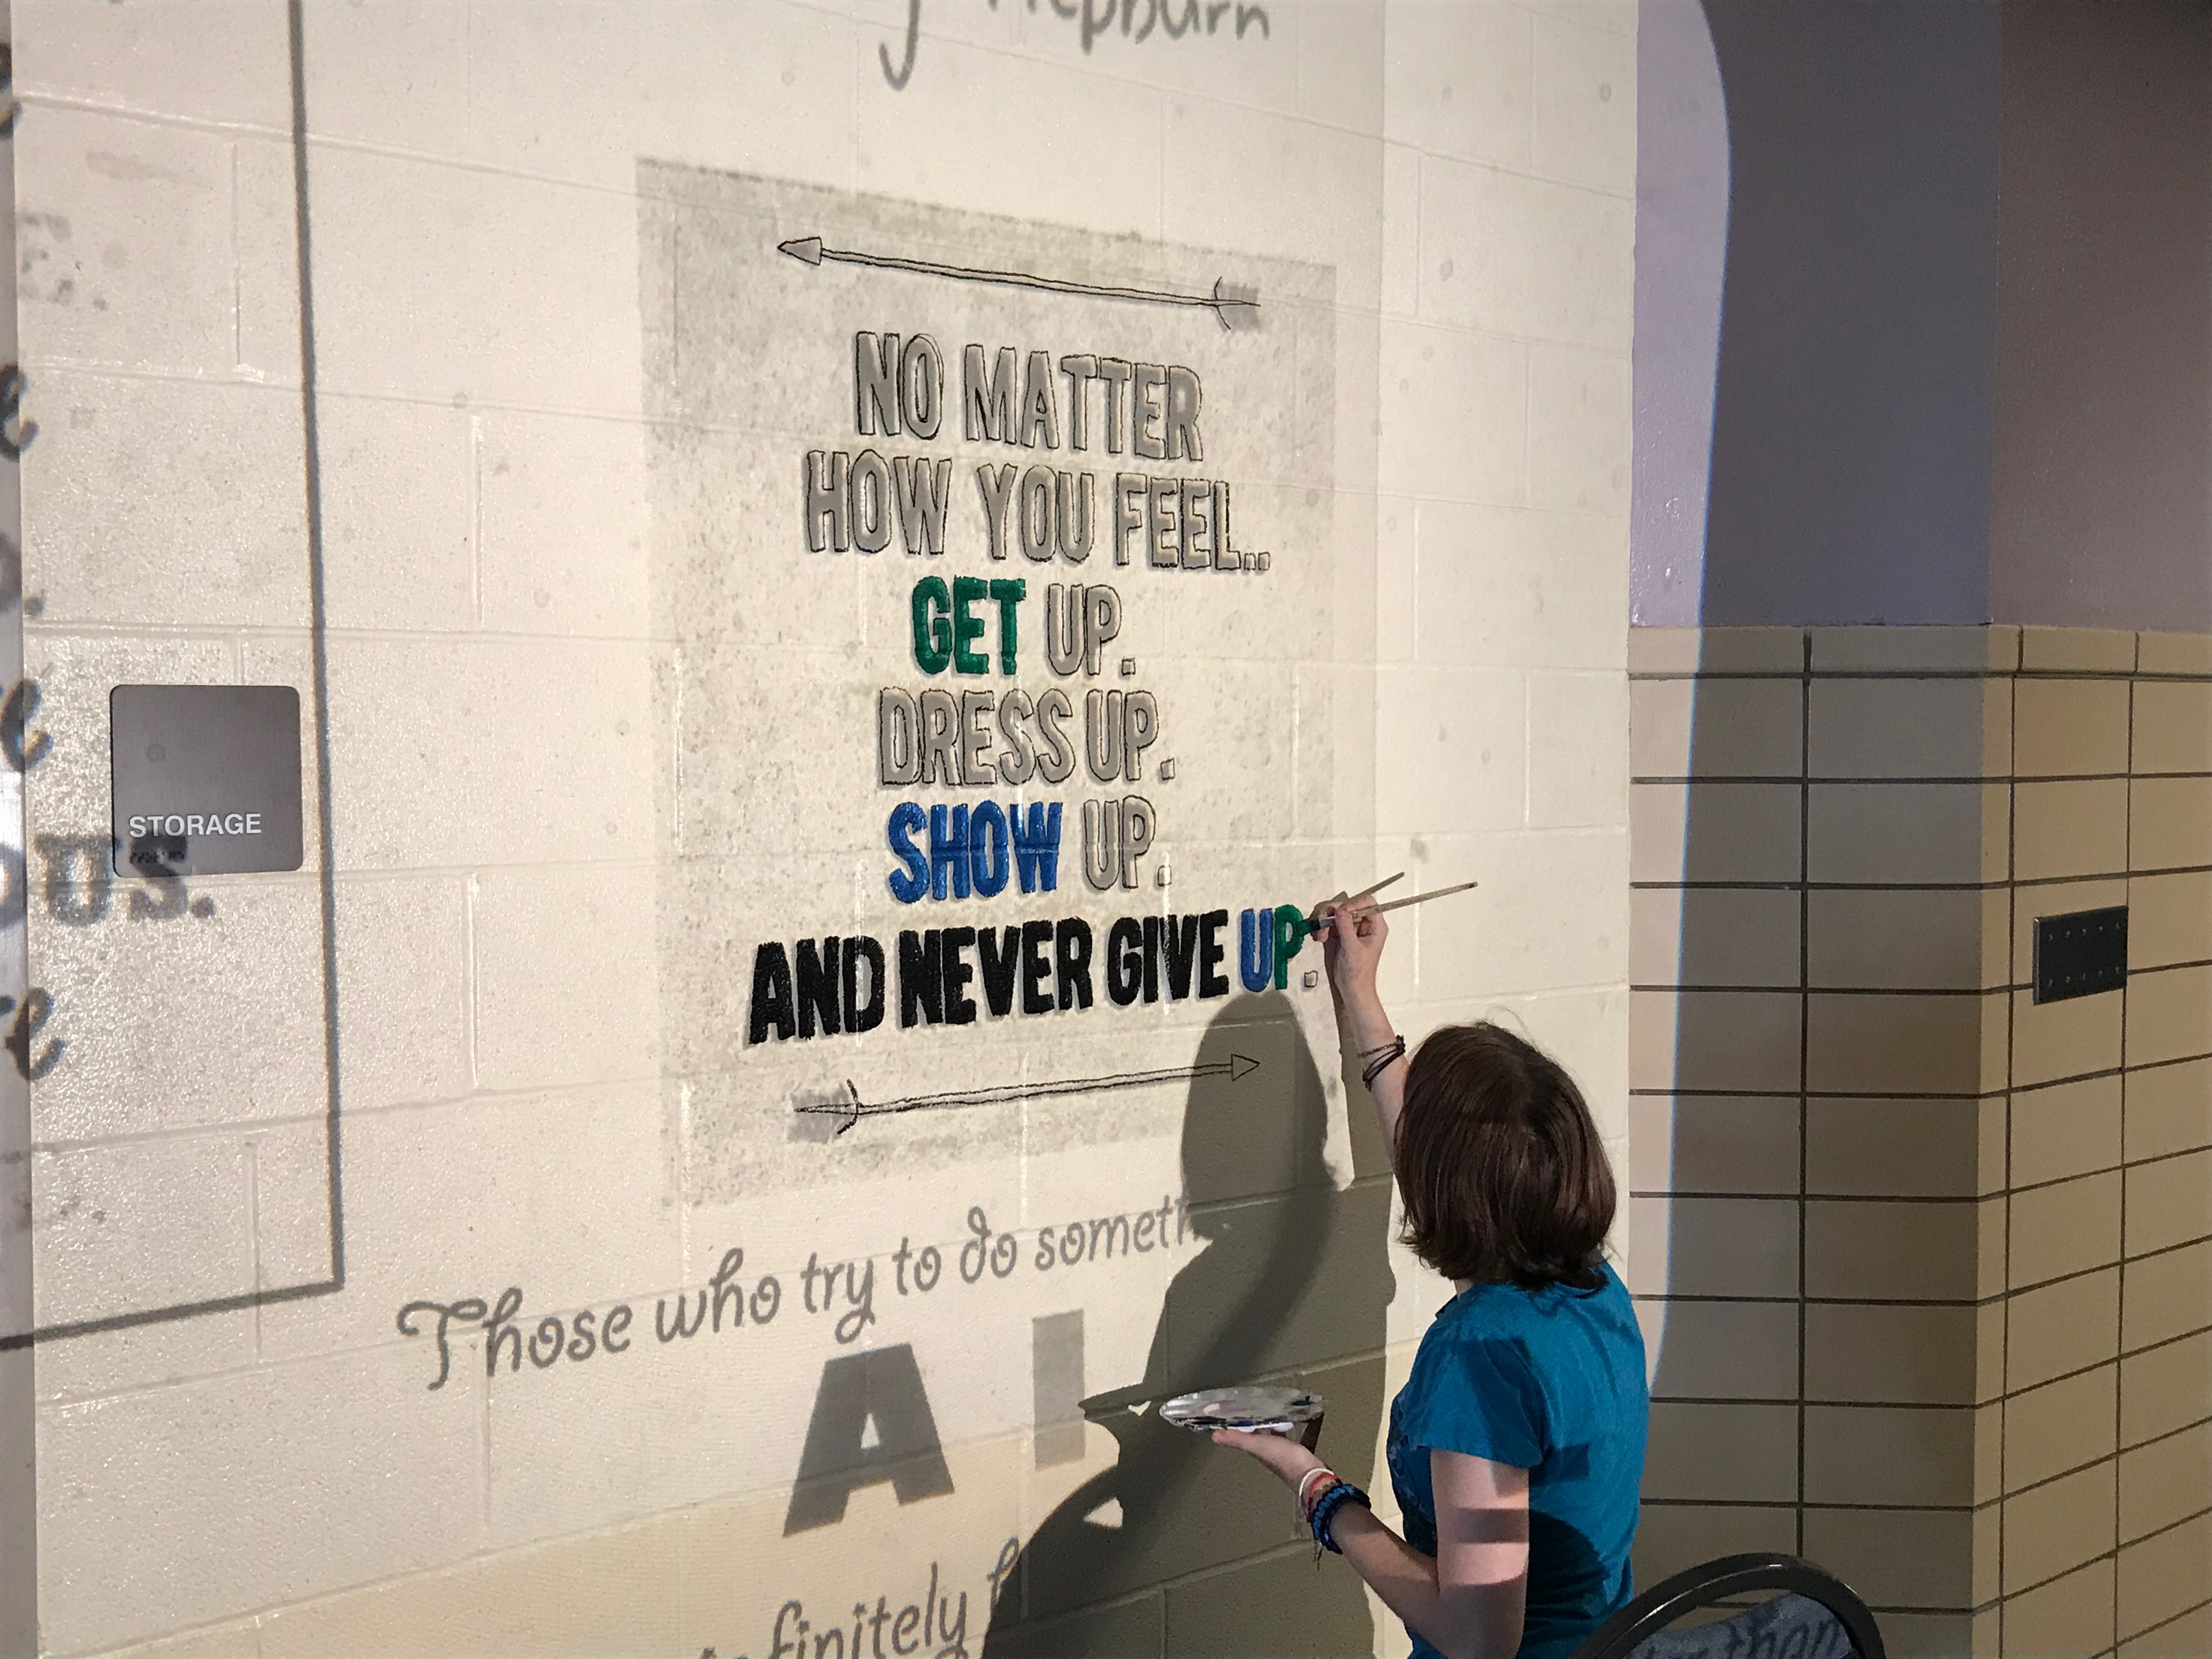 A faculty member paints No Matter How You Feel..Get Up. Dress Up. Show Up. And Never Give Up. onto the wall.